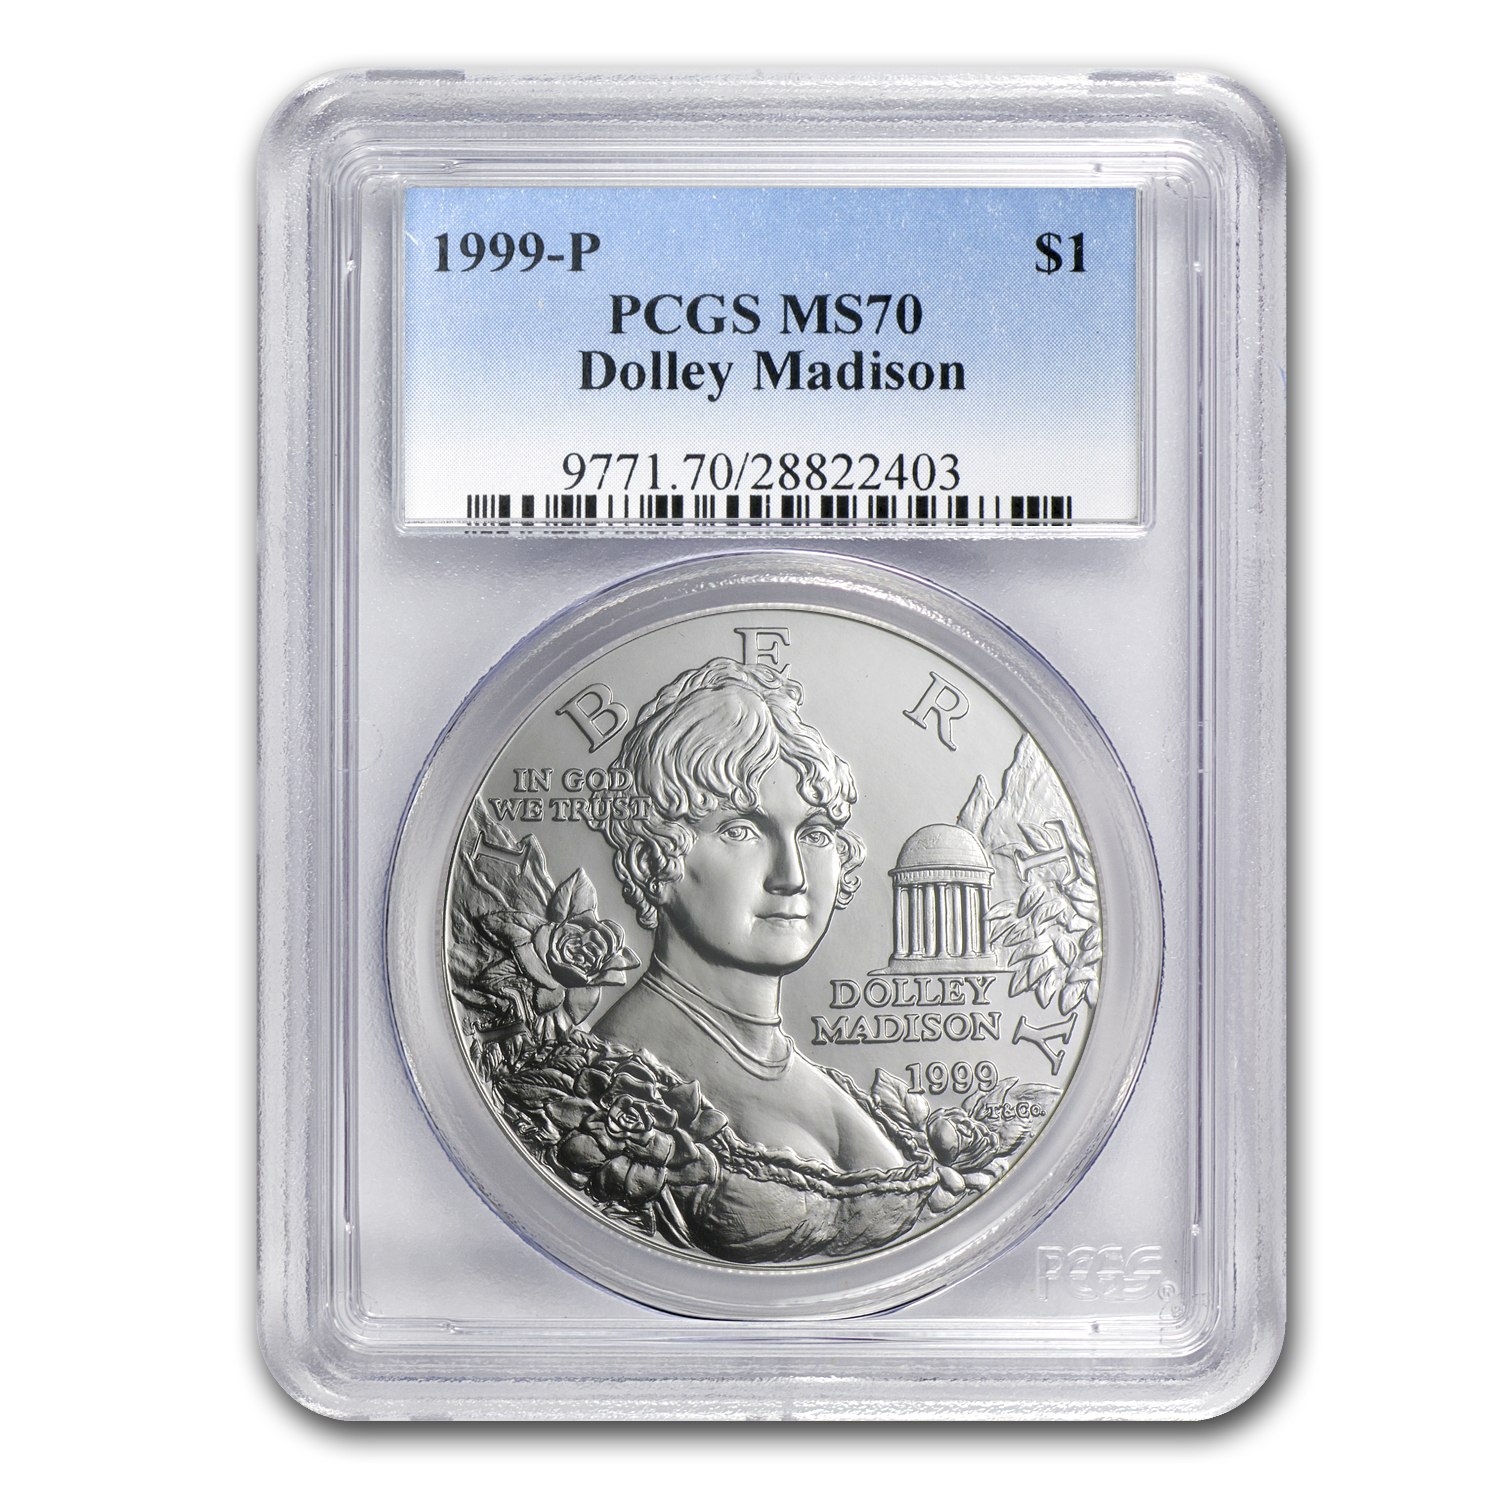 1999-P Dolley Madison $1 Silver Commemorative MS-70 PCGS